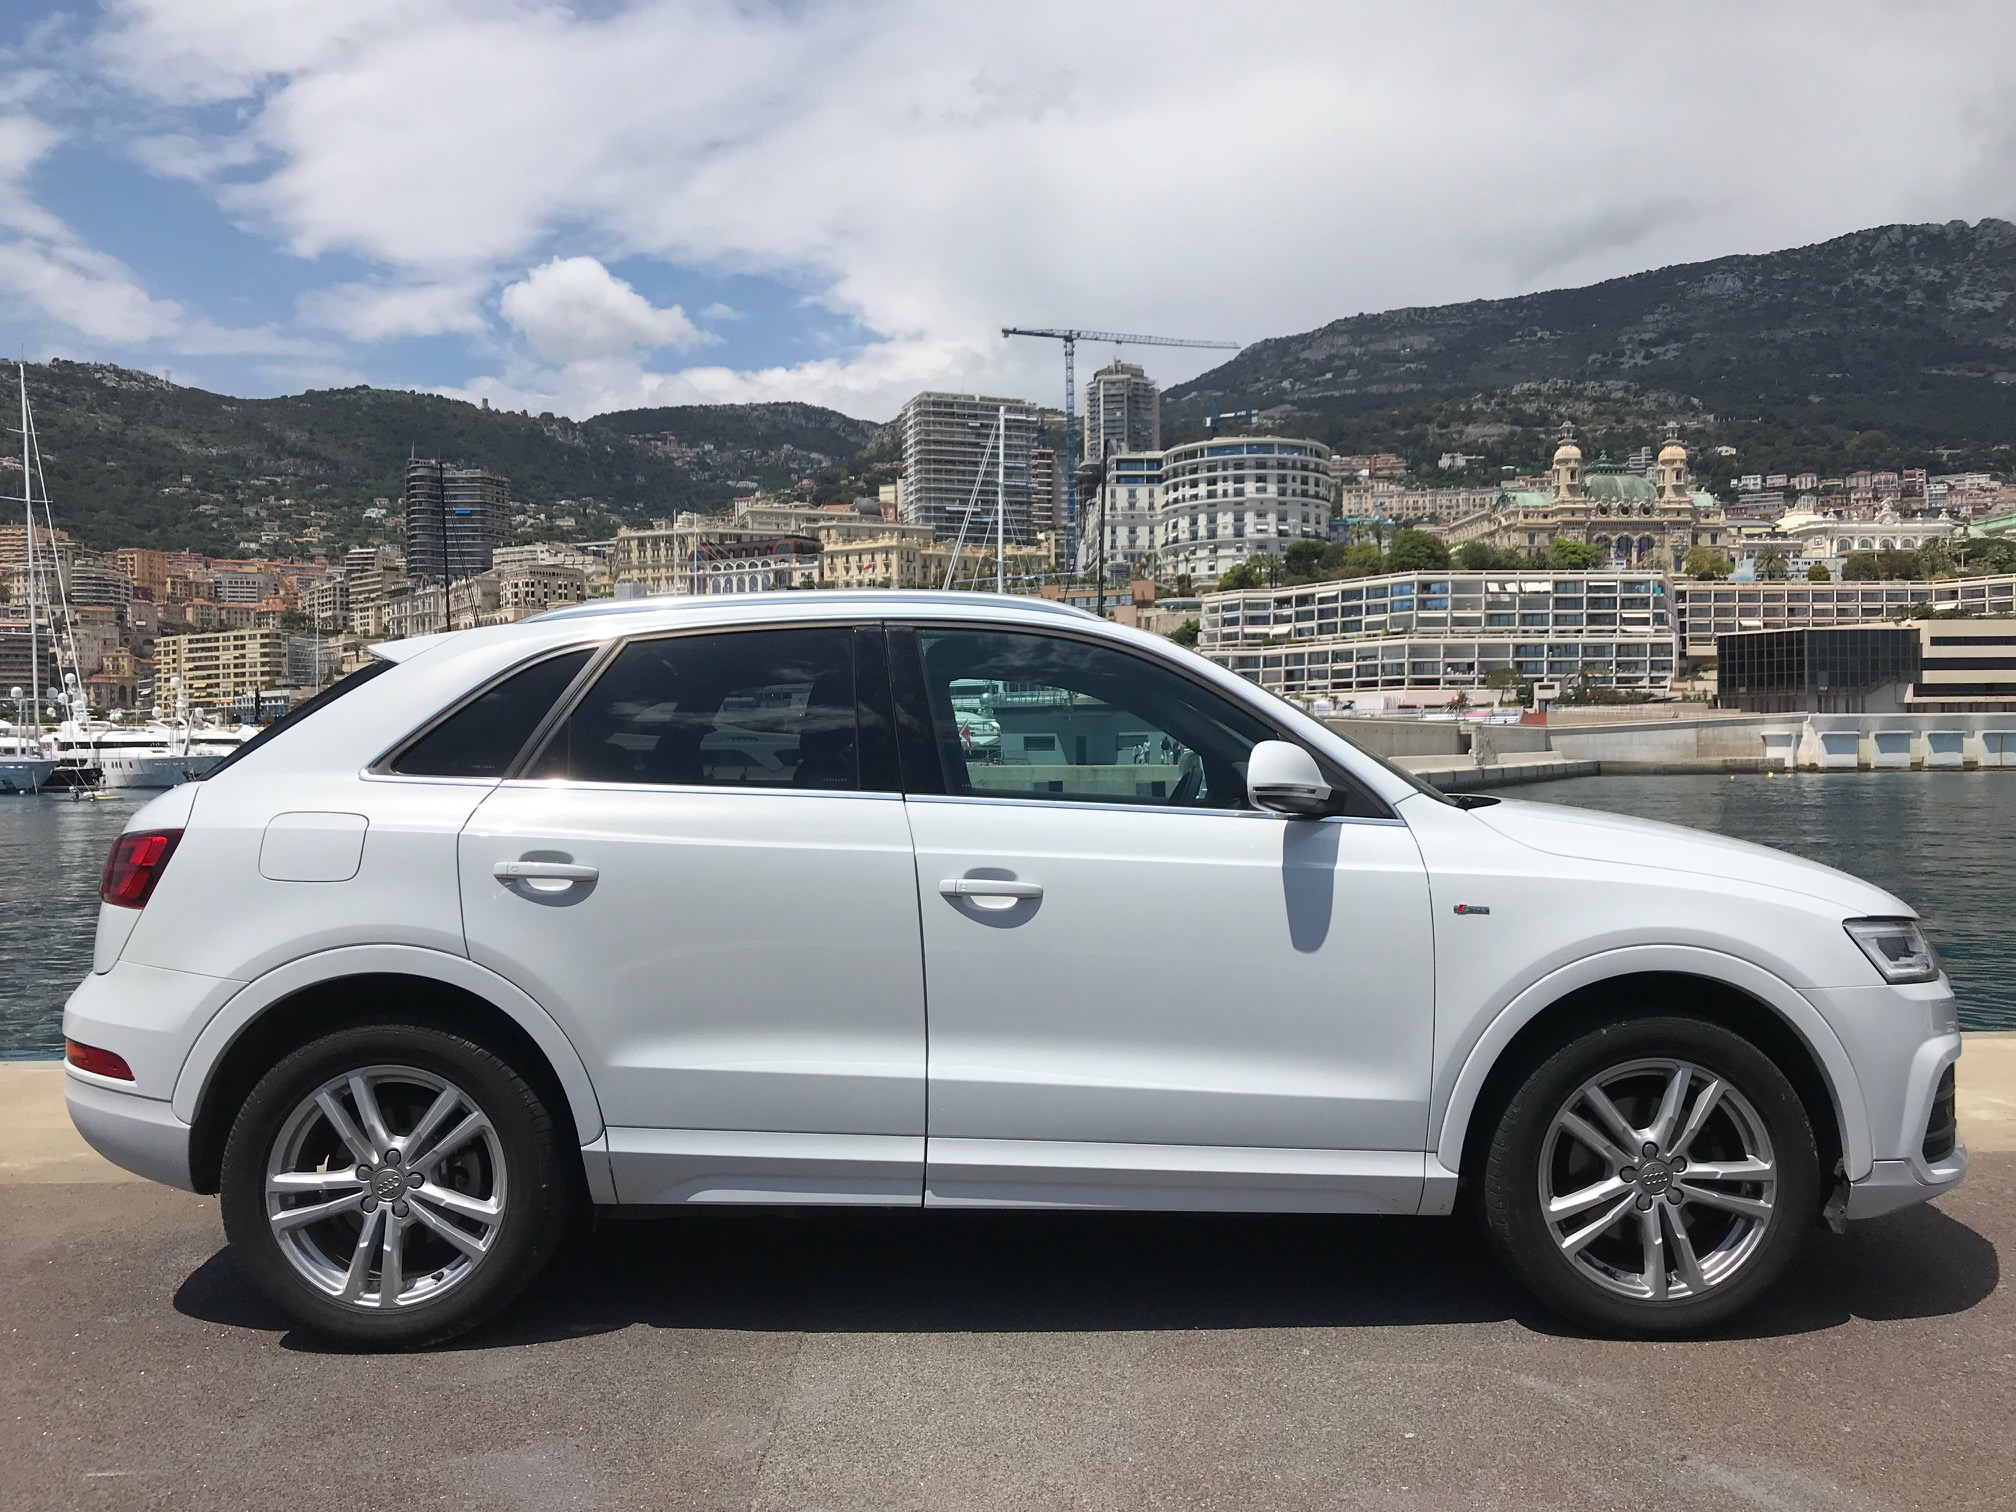 audi q3 2 2 0 tdi 150 s line quattro s tronic s l ctionn par rs monaco. Black Bedroom Furniture Sets. Home Design Ideas